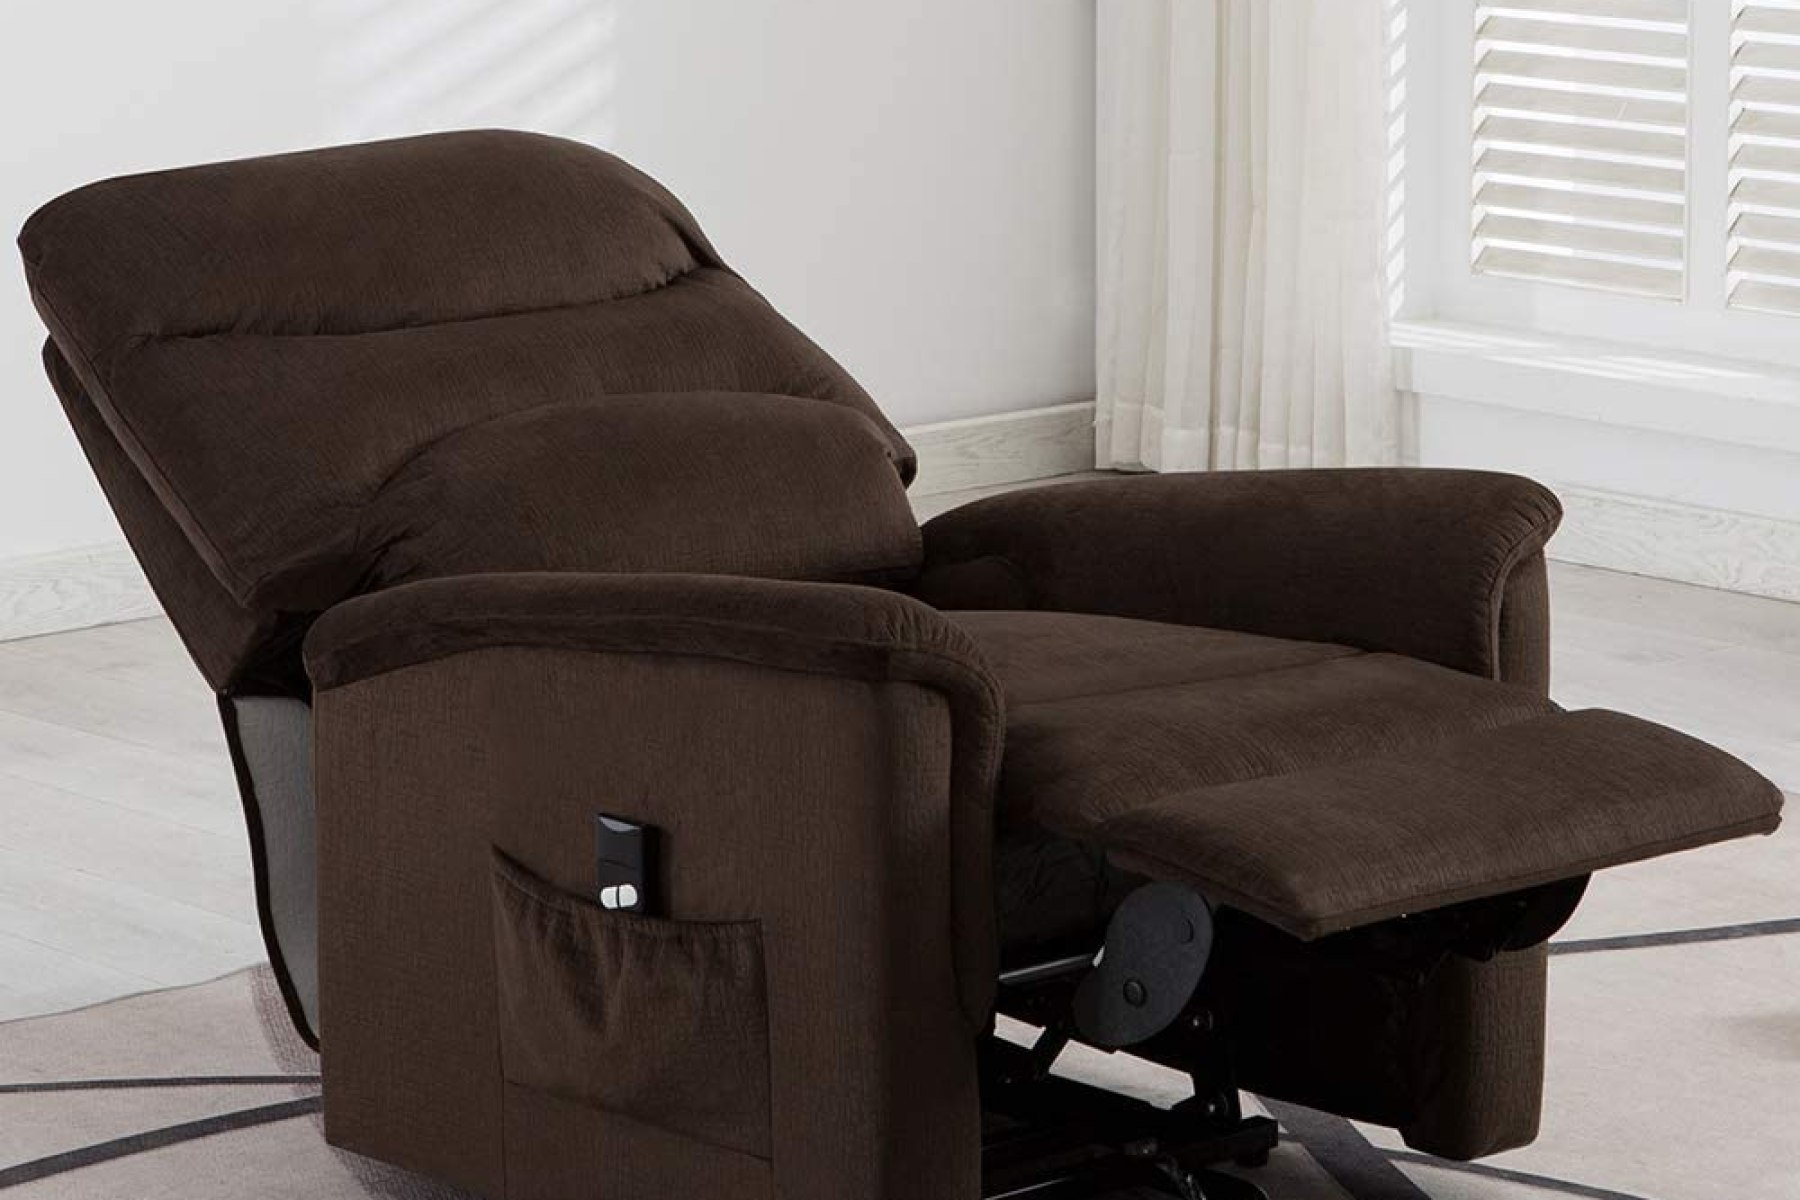 The Best Home Theater Seating 2020 Recliner Reviews And Buying Guide Rolling Stone